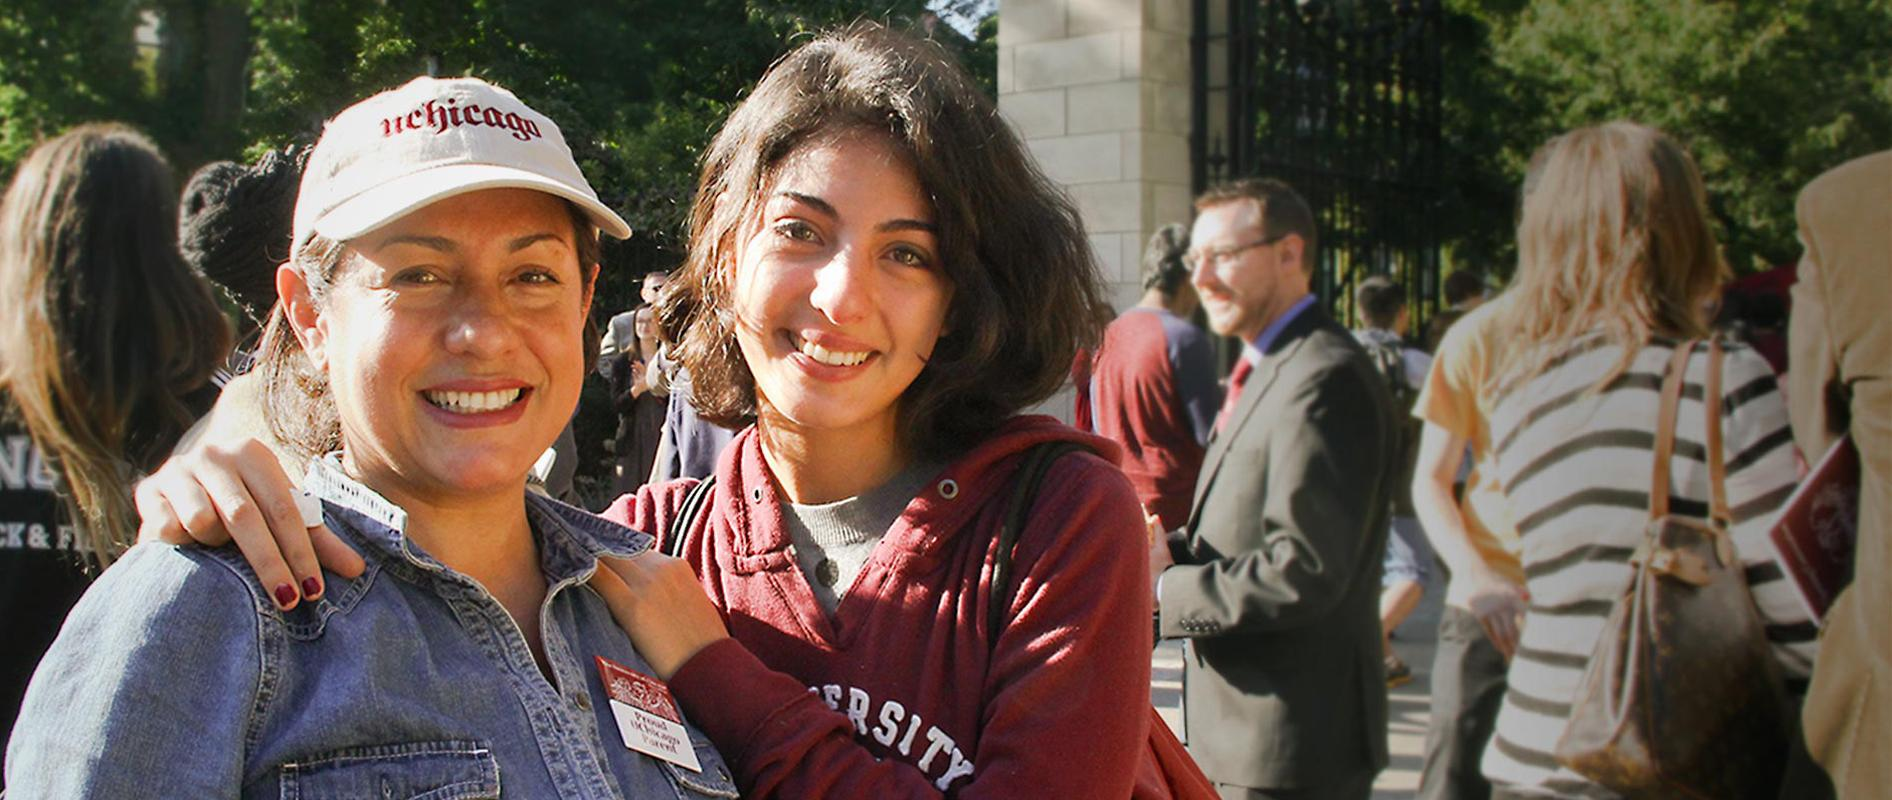 Two female Uchicago students